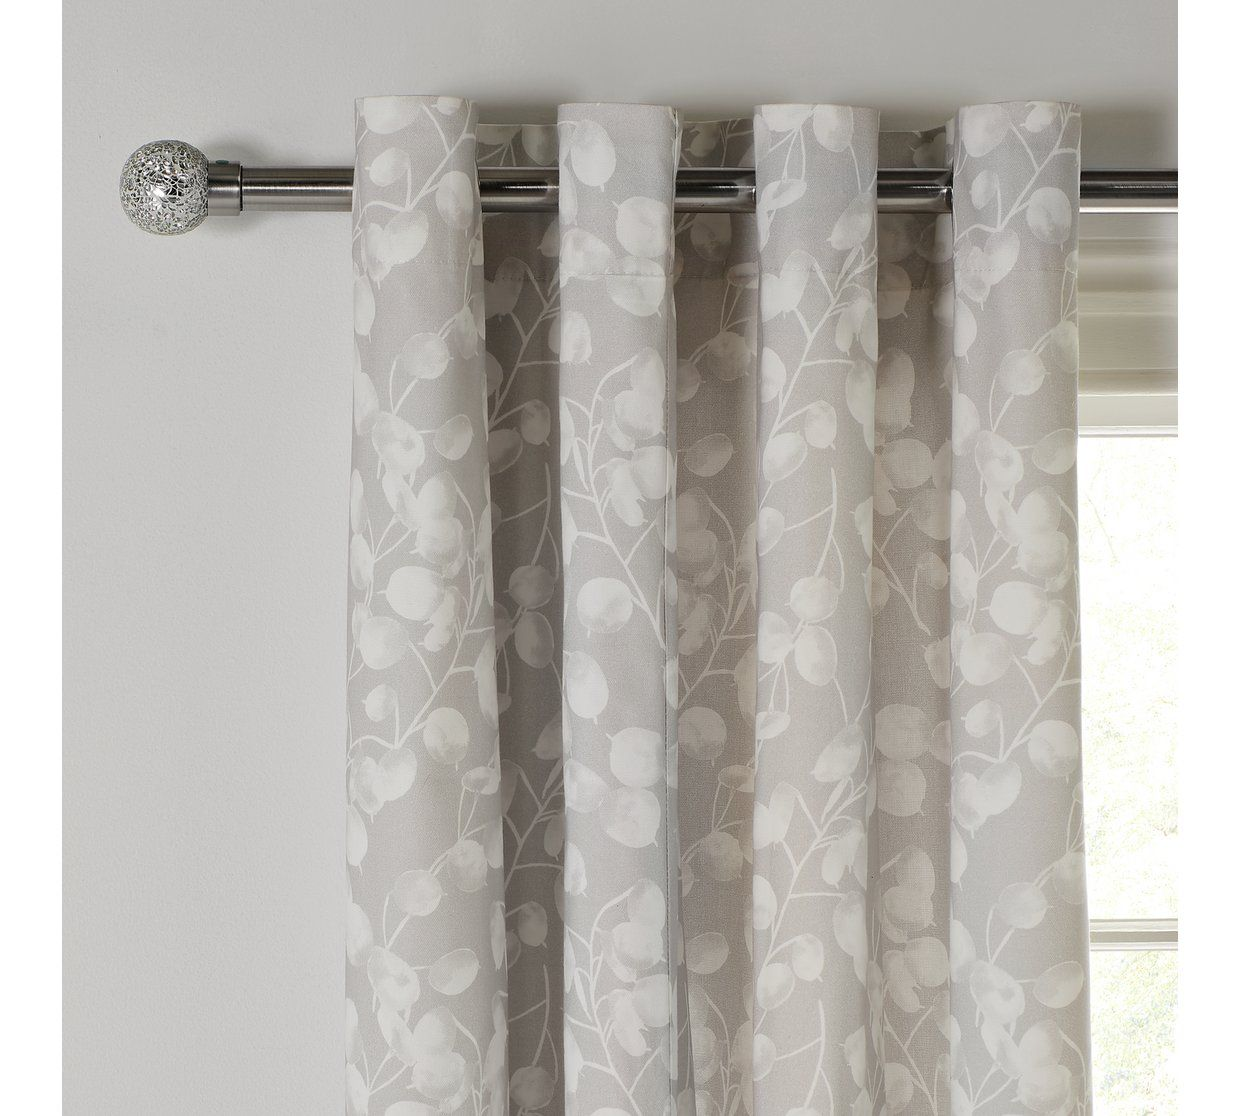 Buy Argos Home Honesty Lined Eyelet Curtains 117x137cm Grey Curtains Argos Argos Home Grey Curtains Curtains